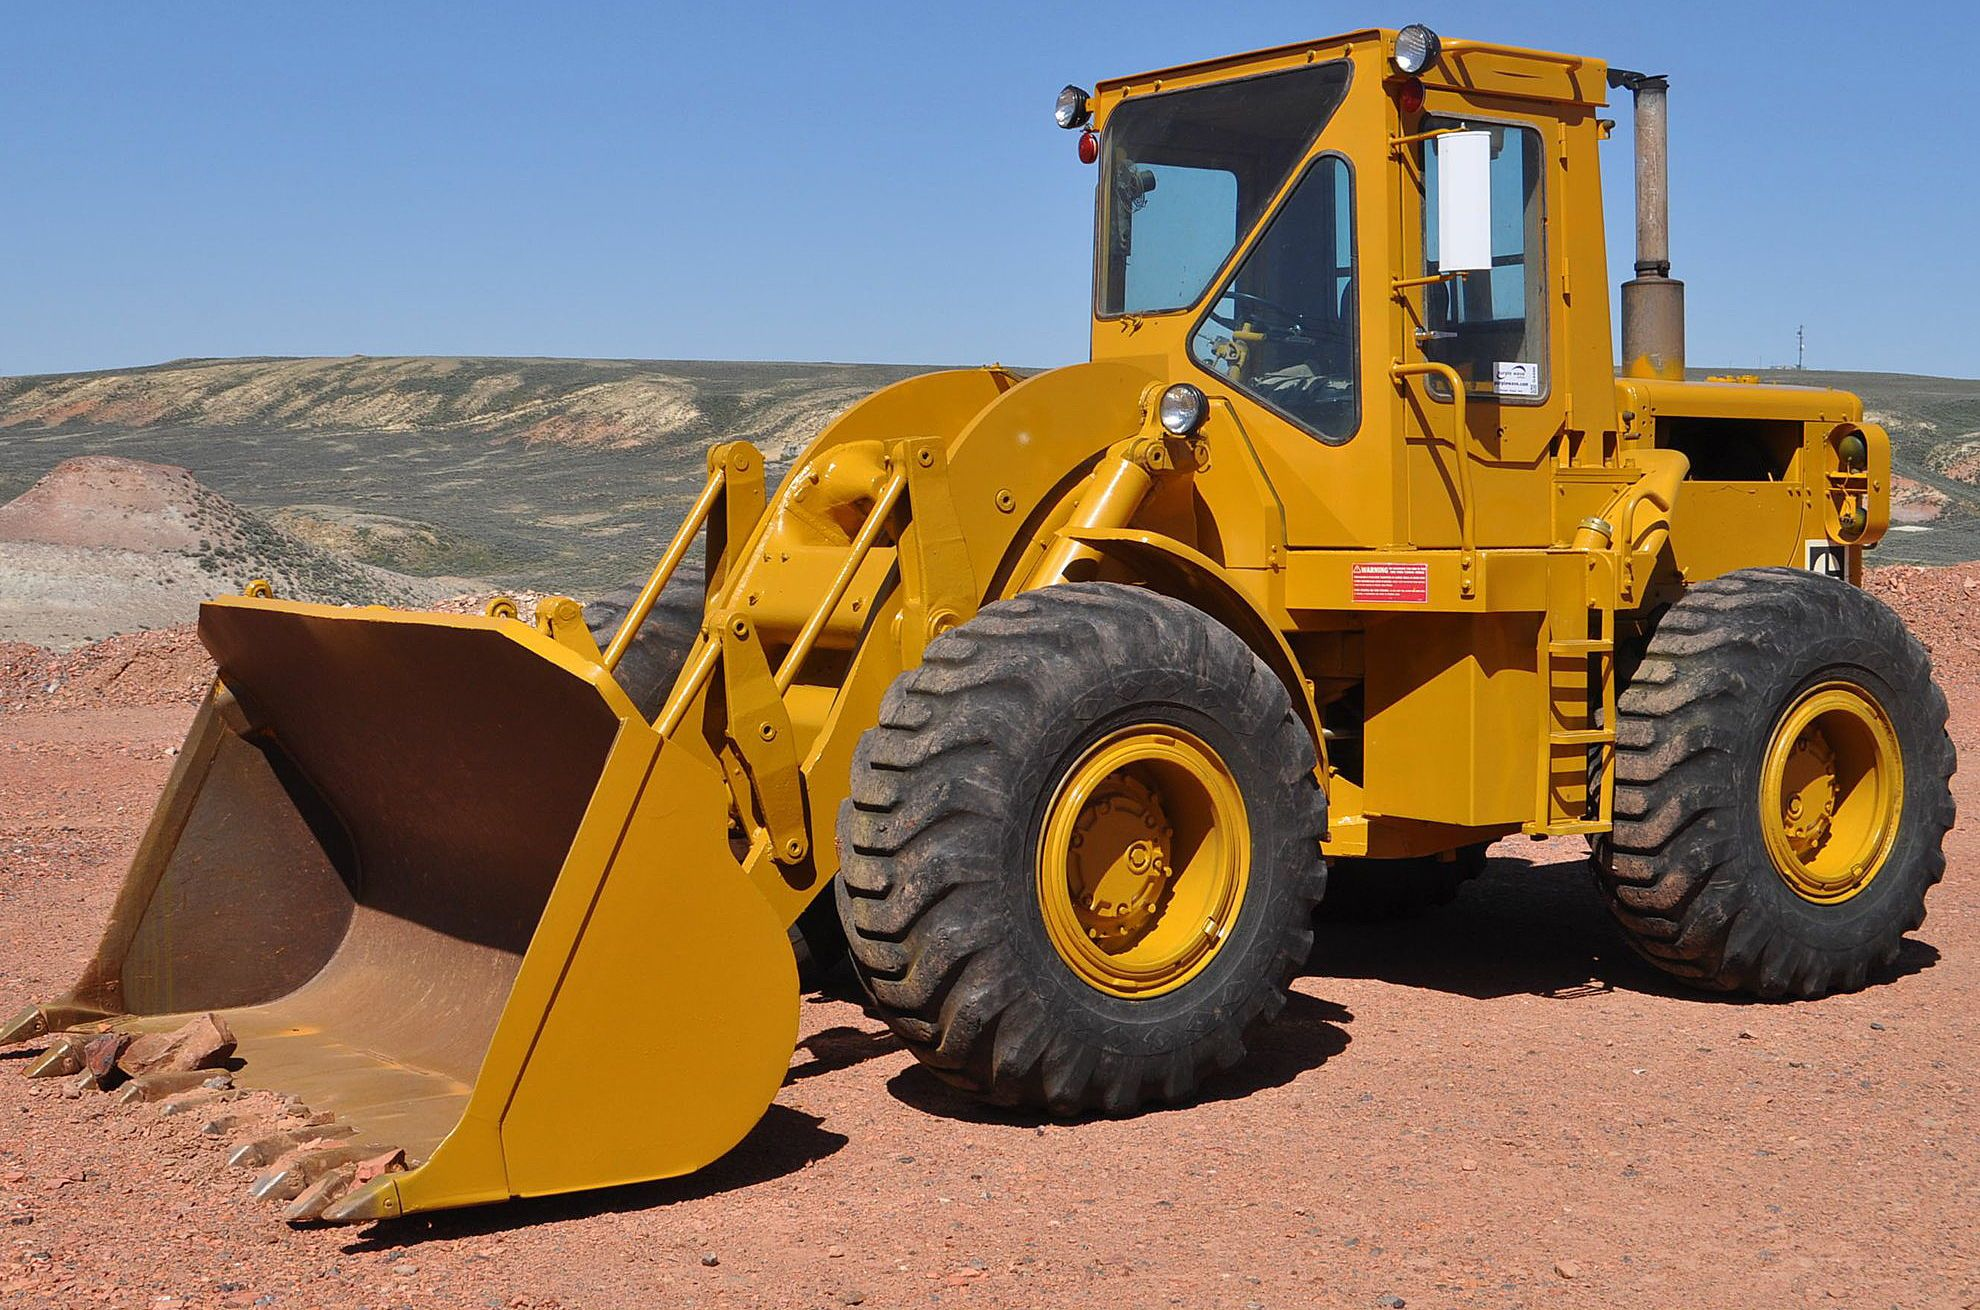 The Wheel Loader A useful piece of equipment Repair